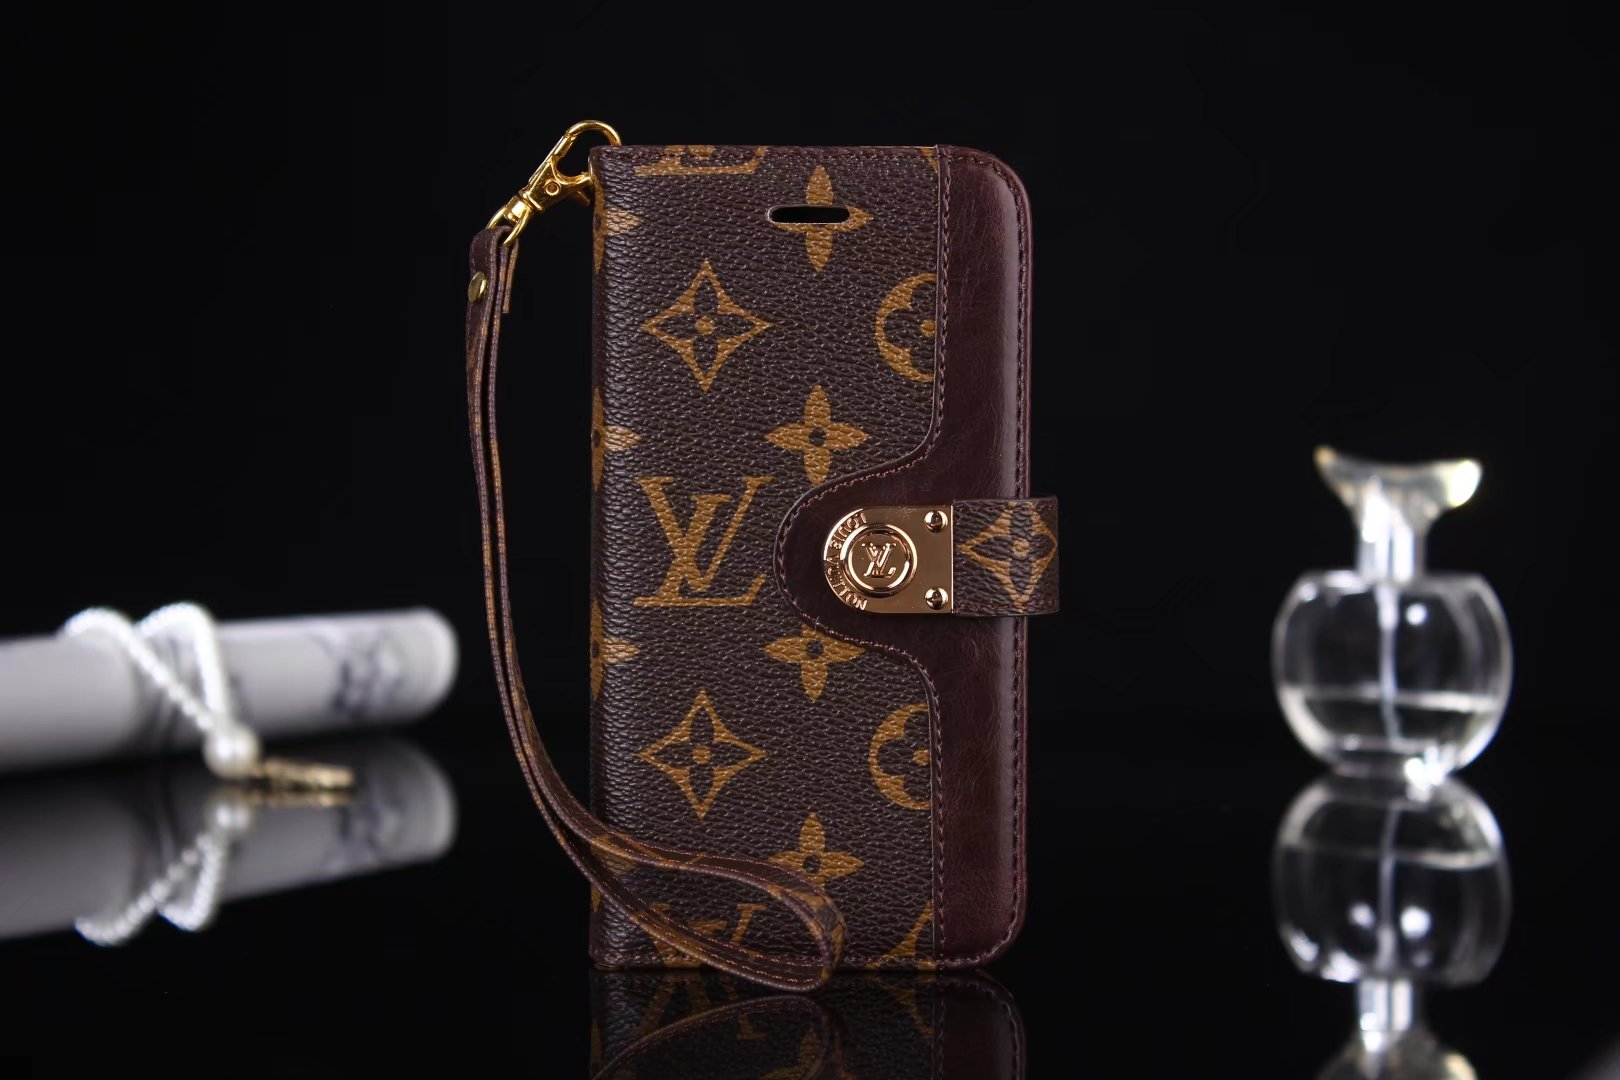 case für iphone iphone gummihülle Louis Vuitton iphone X hüllen iphone schutz iphone X caX leder iphone X ledertasche exklusiv virenschutz für iphone natel hüllen iphone X X zoll